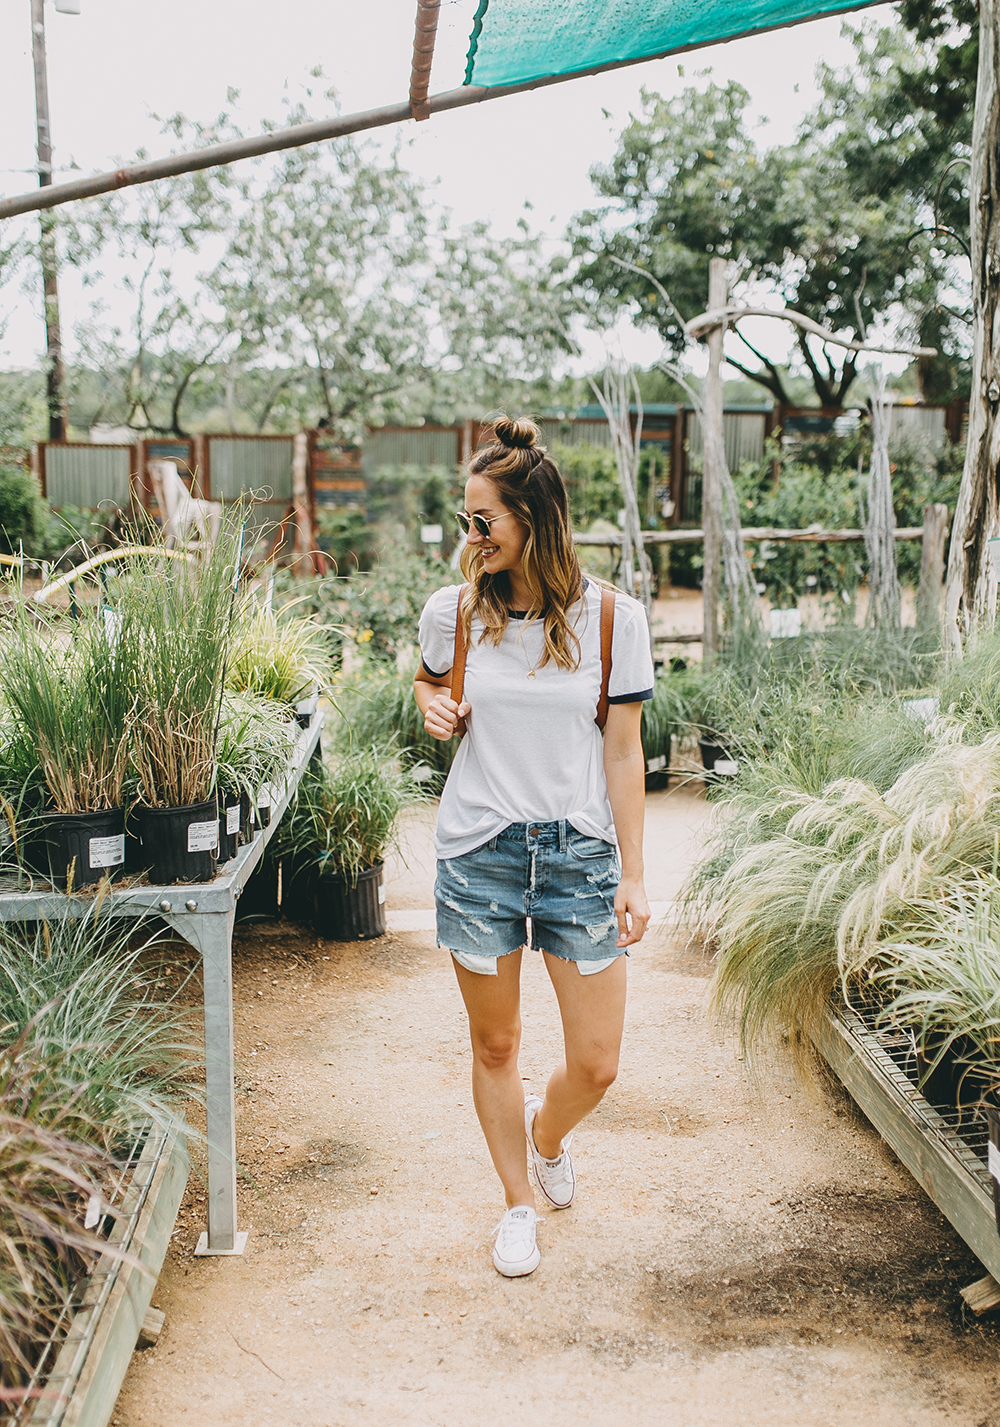 livvyland-blog-olivia-watson-austin-texas-fashion-blogger-natural-gardener-tee-boyfriend-shorts-denim-cutoffs-easy-summer-outfit-idea-treasure-bond-nordstrom-10